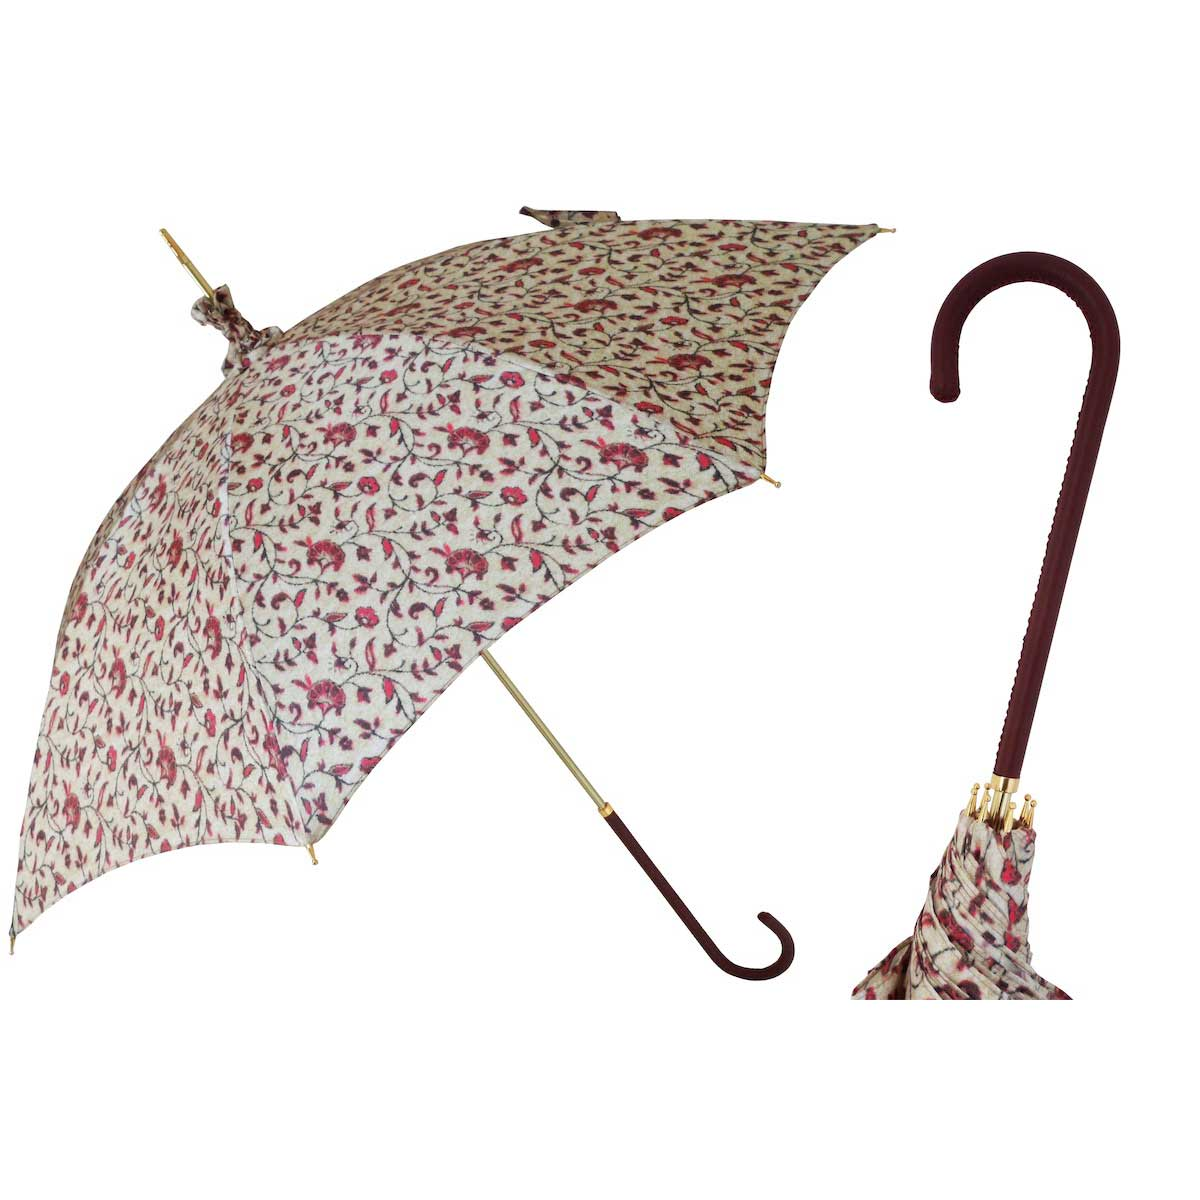 Pasotti Liberty Parasol - Brown Leather Handle